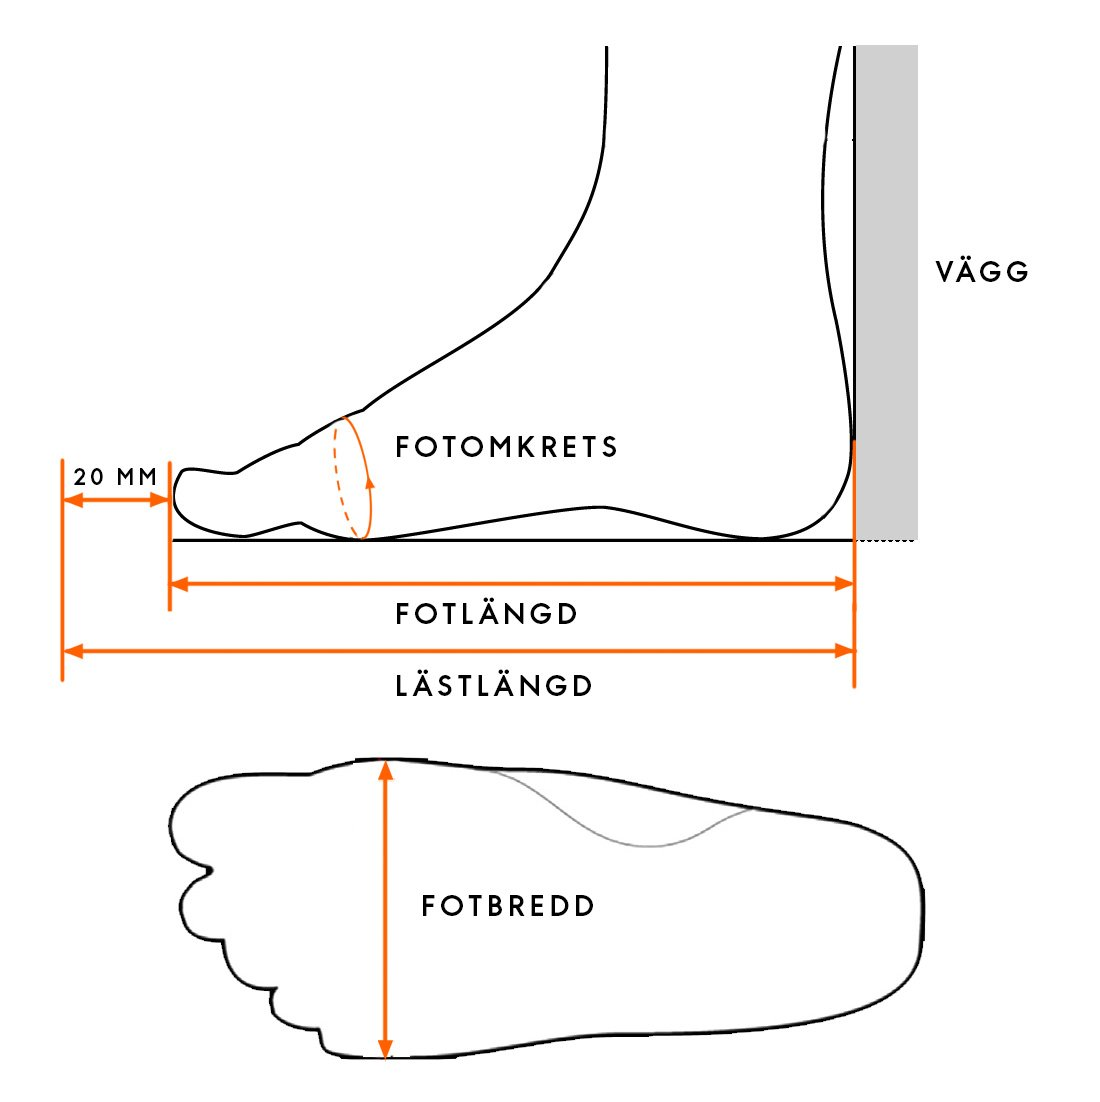 fot-measurements-illustration2-SV.jpg